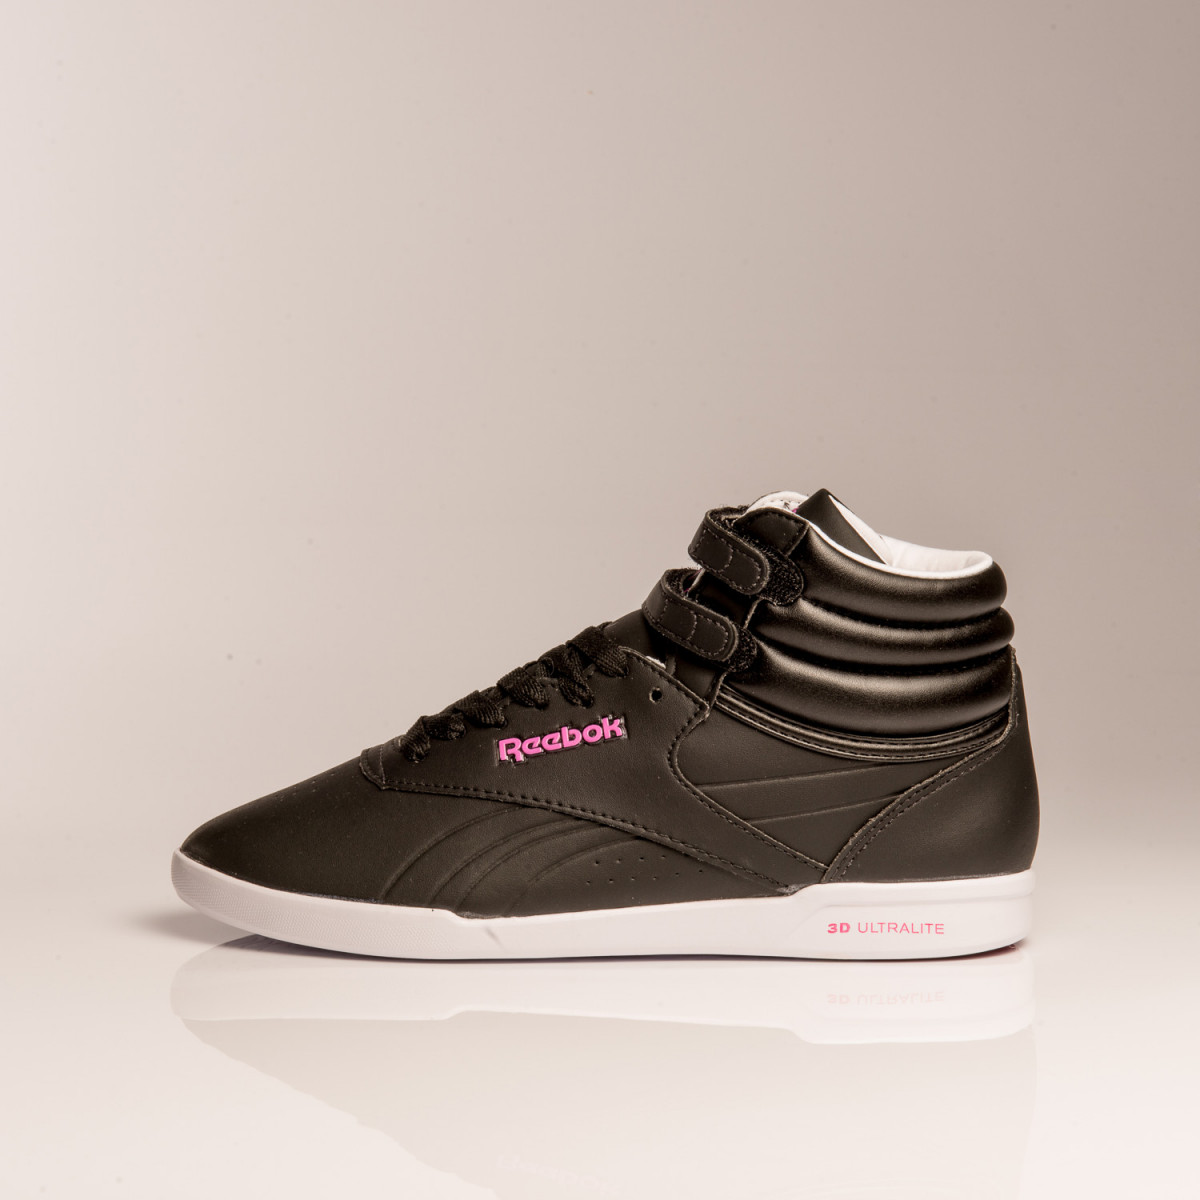 BOTAS REEBOK FREESTYLE ULTRALITE